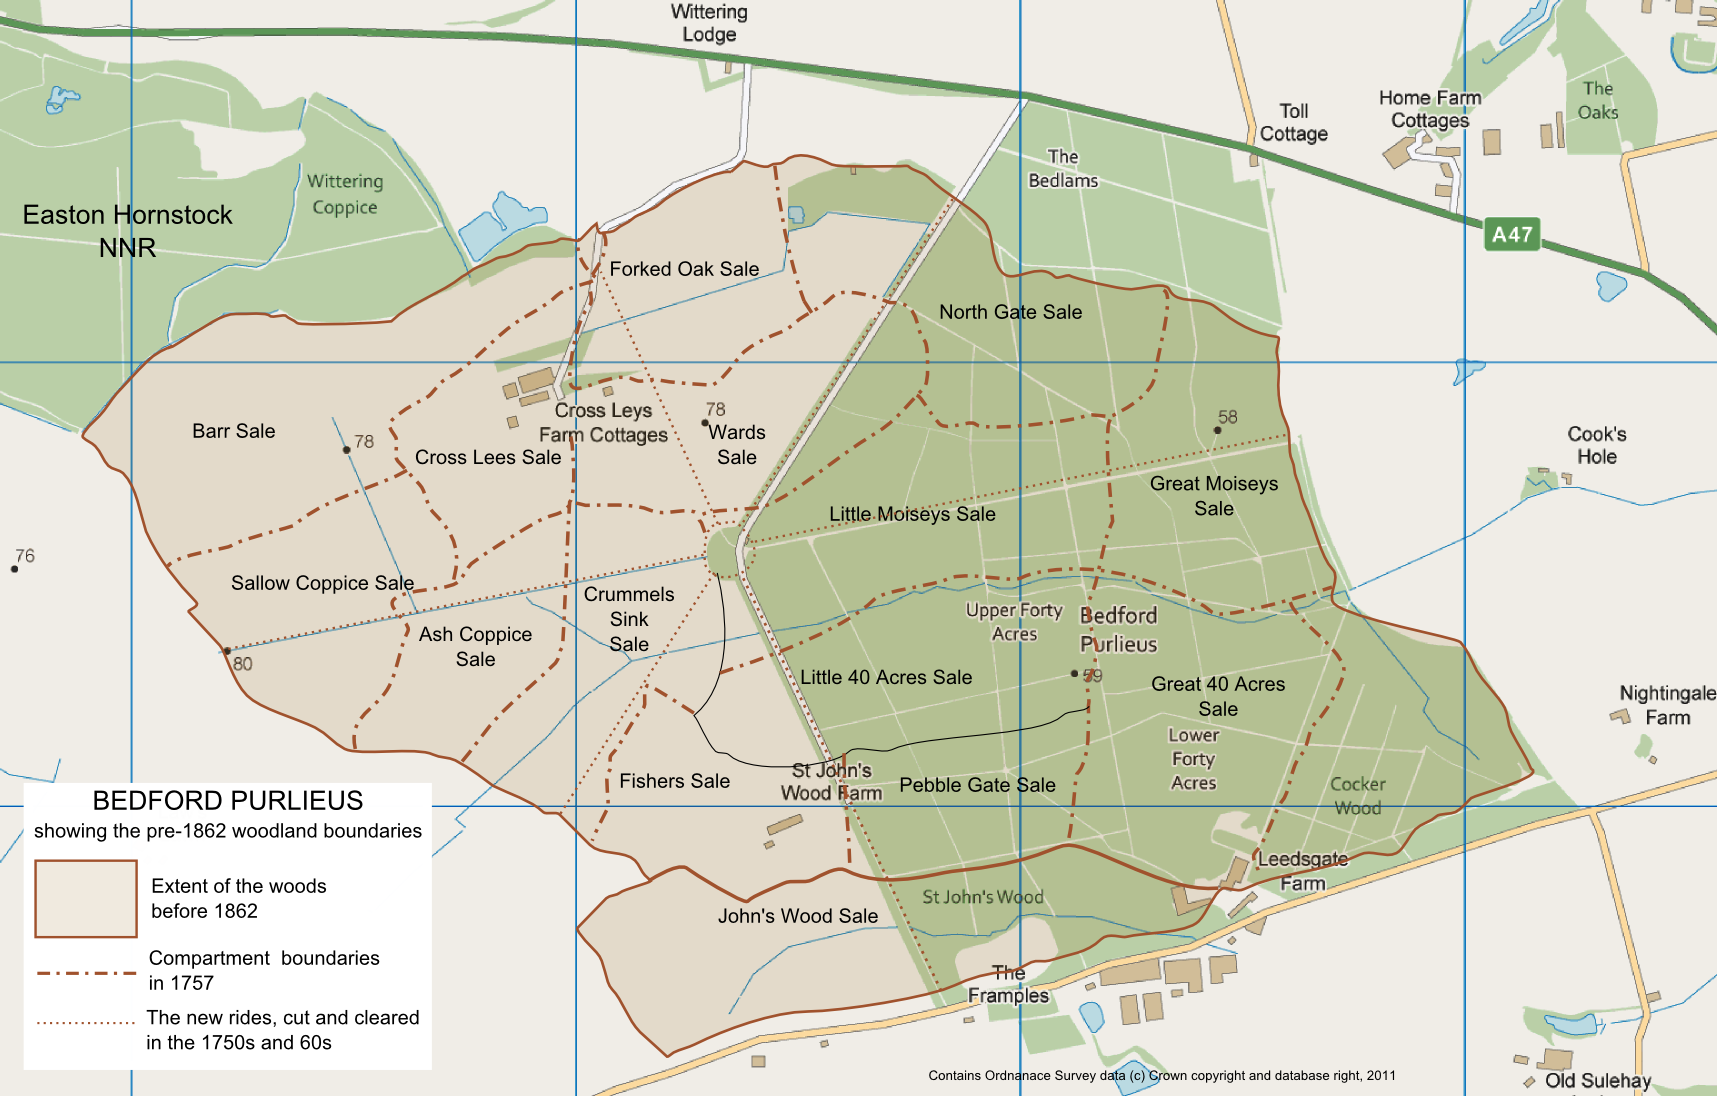 FileBedford Purlieus map showing former woodlandpng Wikimedia